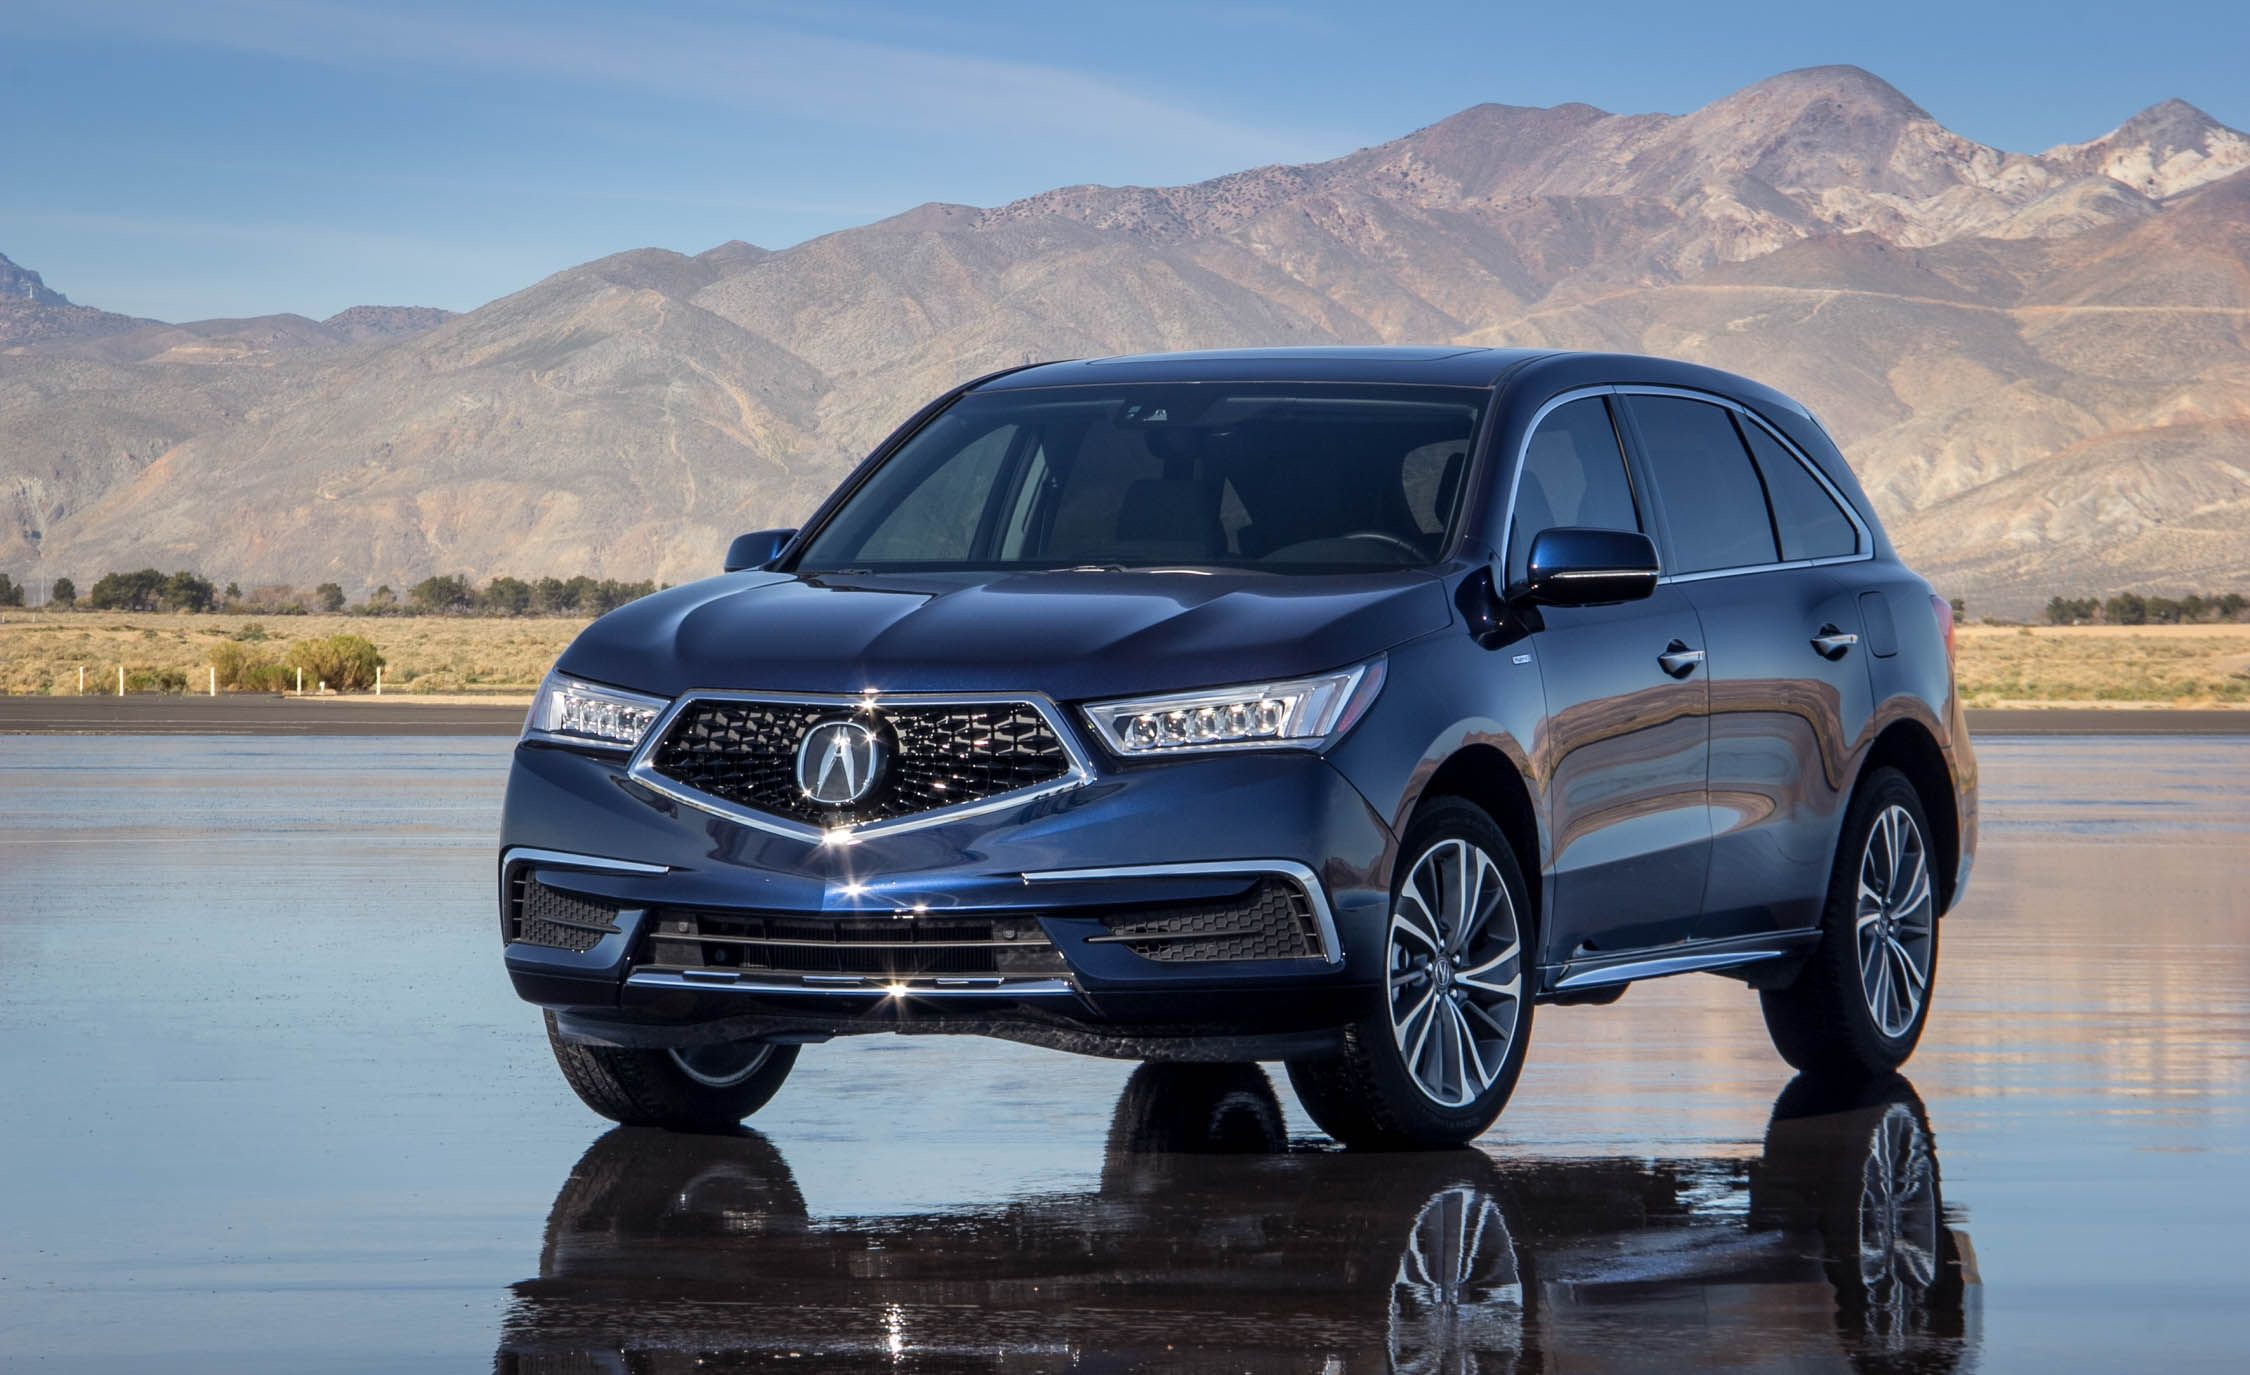 Acura Mdx Sport Hybrid Brings 5 Mpg Boost For Only A Little More Money